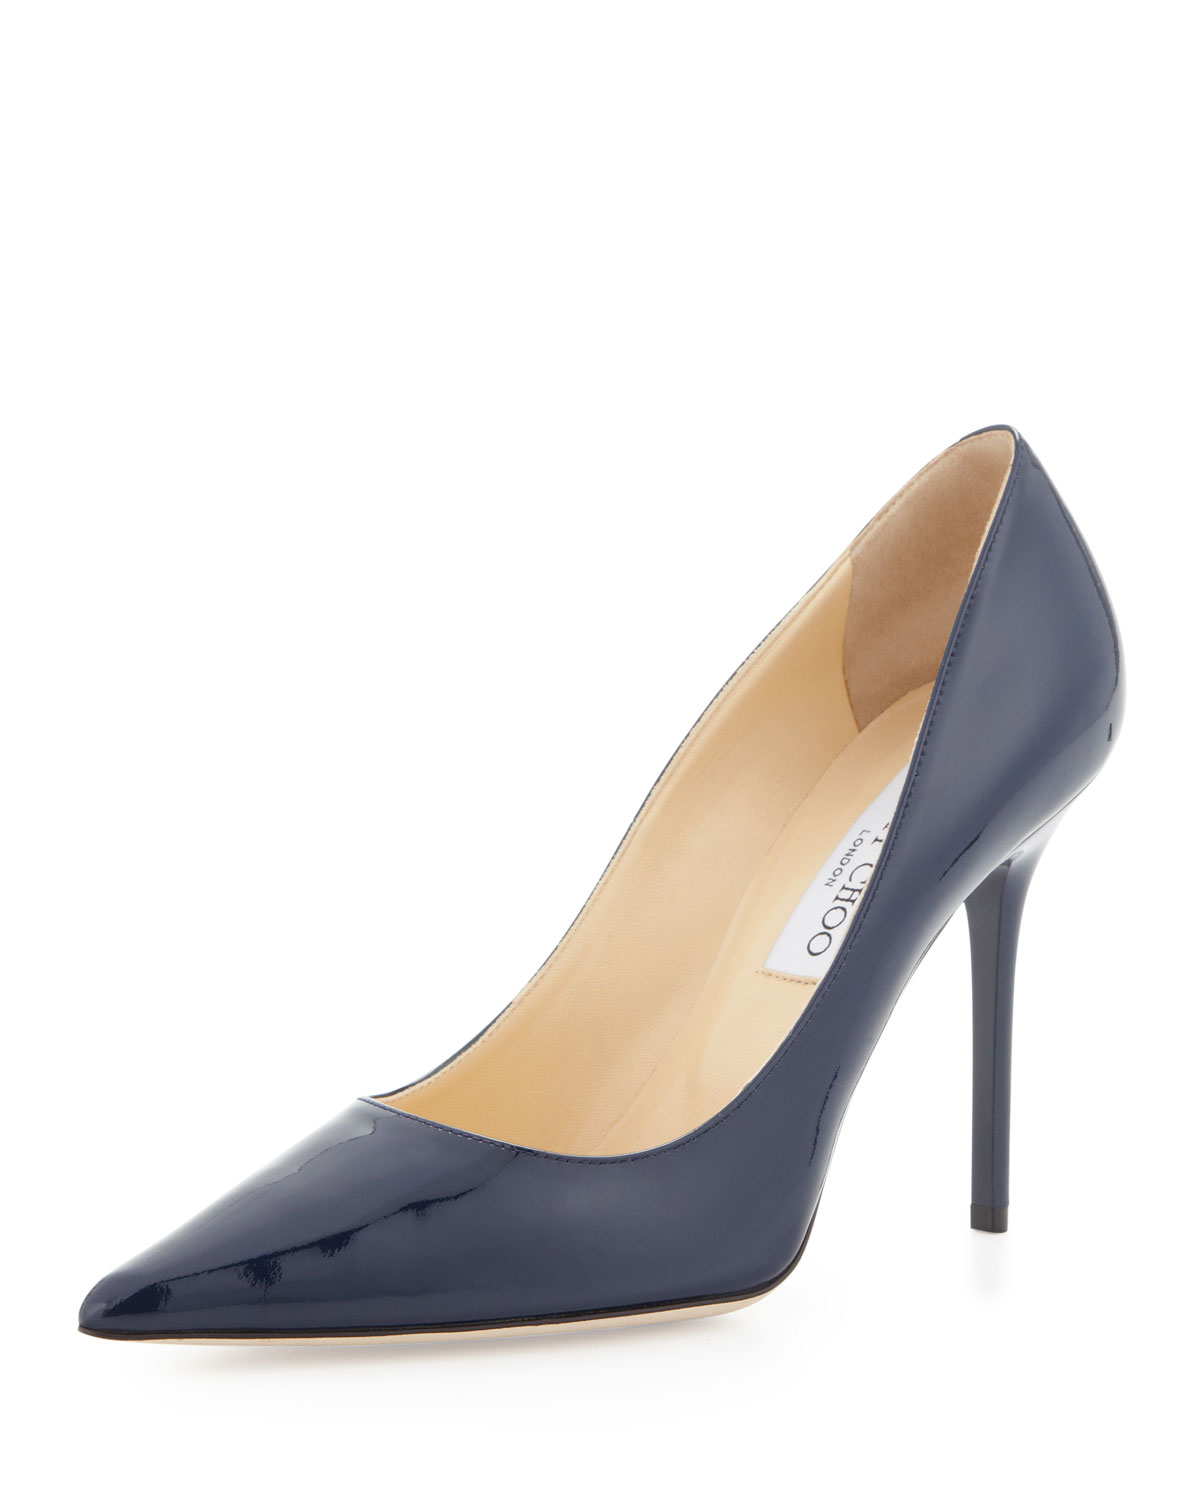 Jimmy Choo Agnes Pointedtoe Patent Pump Nude in Natural - Lyst